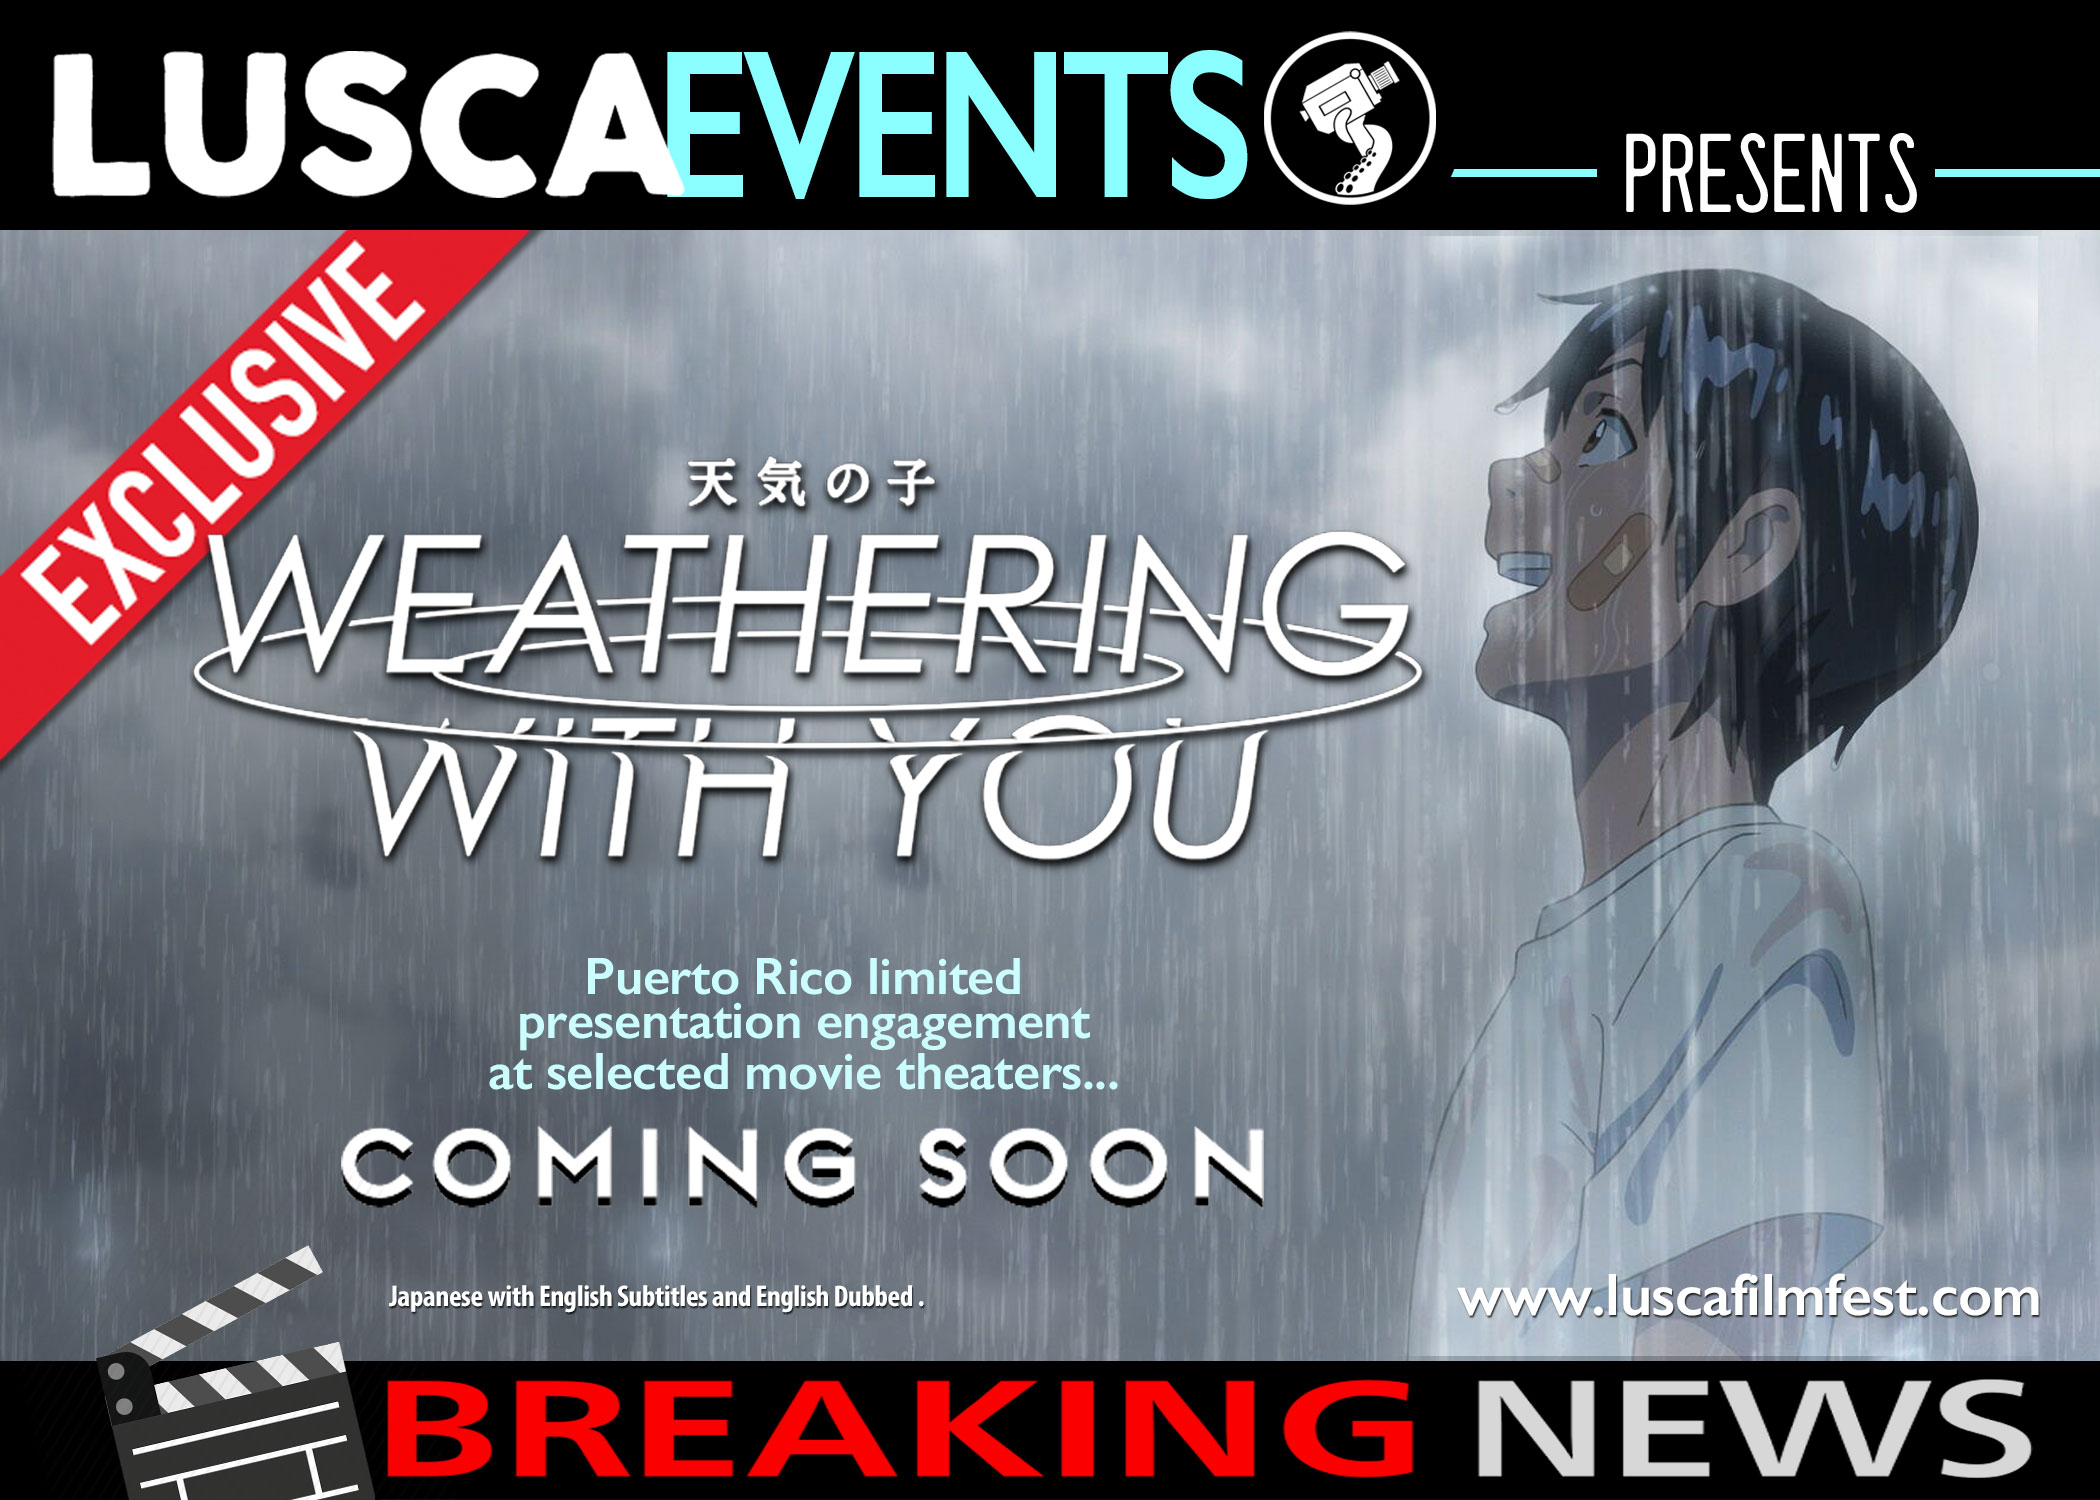 Weathering with You @ Puerto Rico